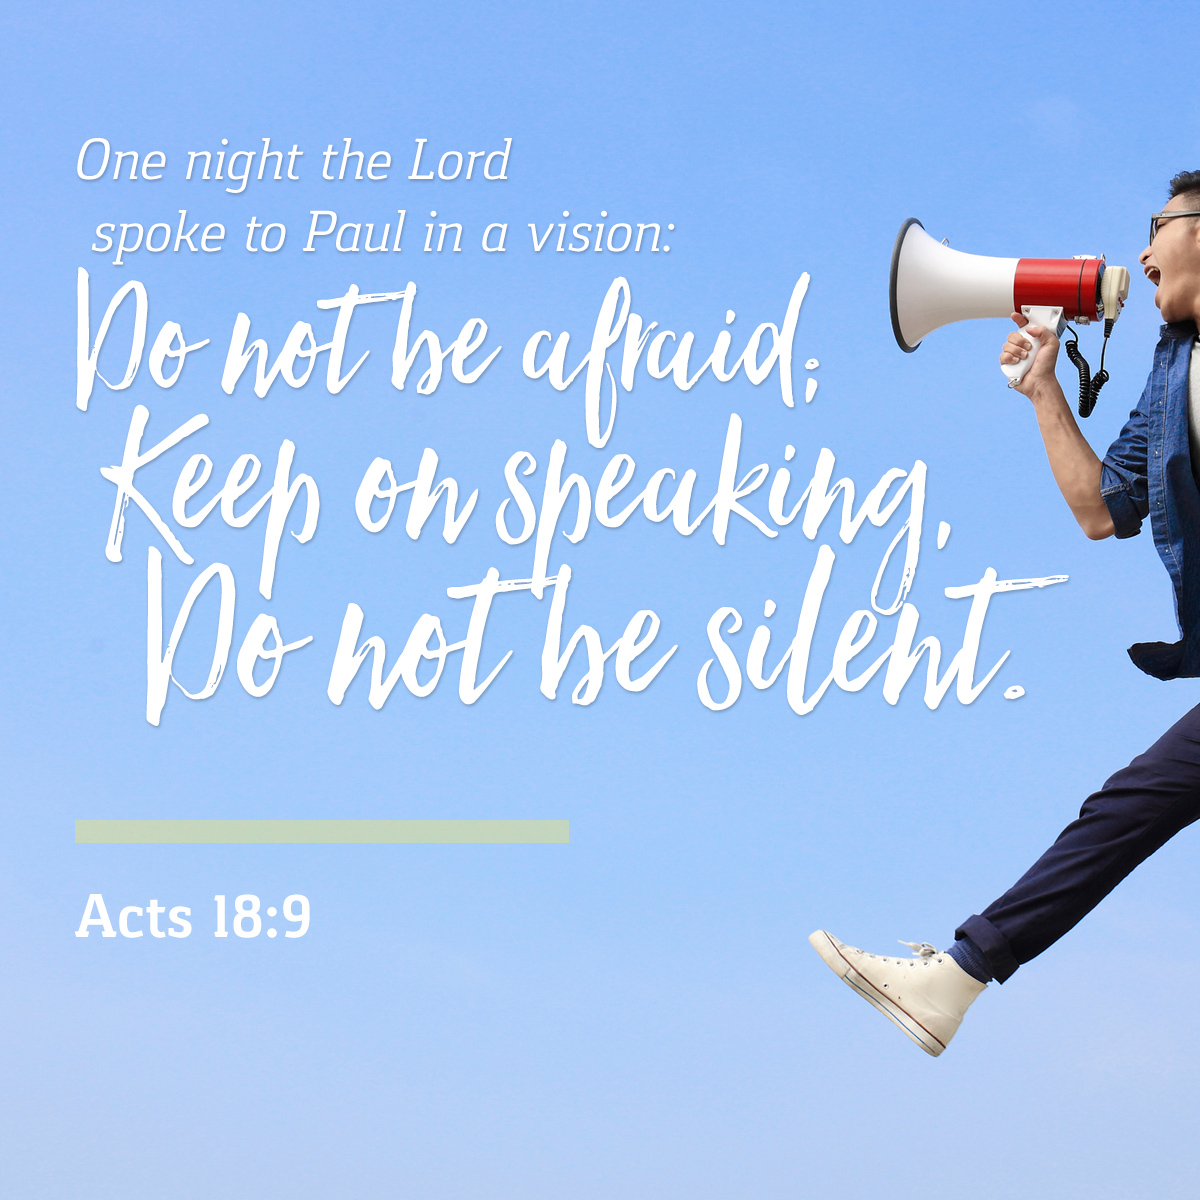 Acts 18:9 - Daily Verse